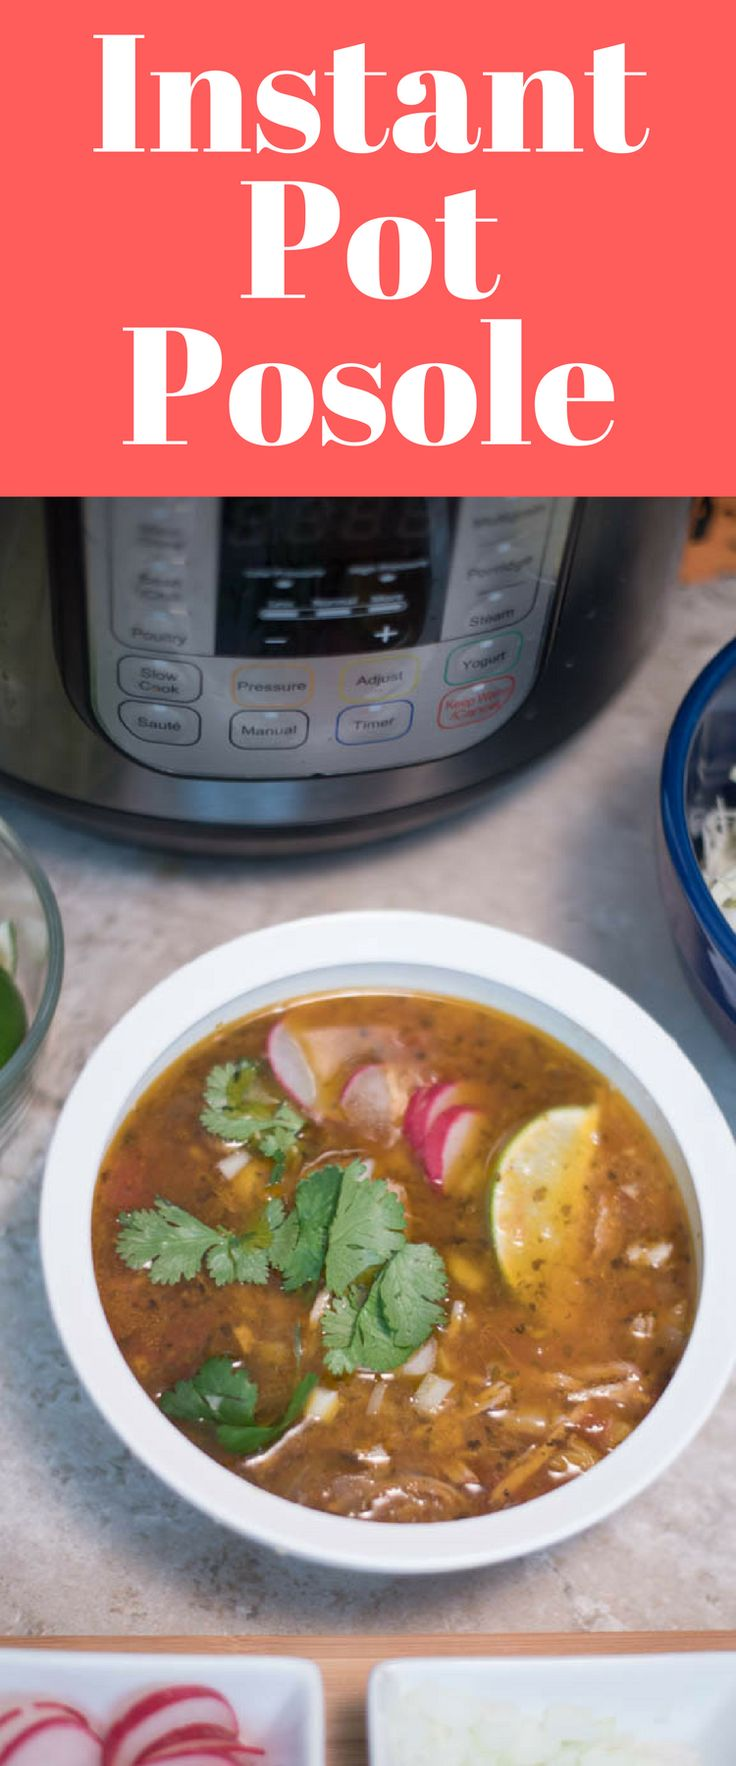 Instant Pot Posole / Posole Recipe / How to make Posole / Pressure Cooker Posole / #InstantPot #SoupRecipes #ad via @clarkscondensed